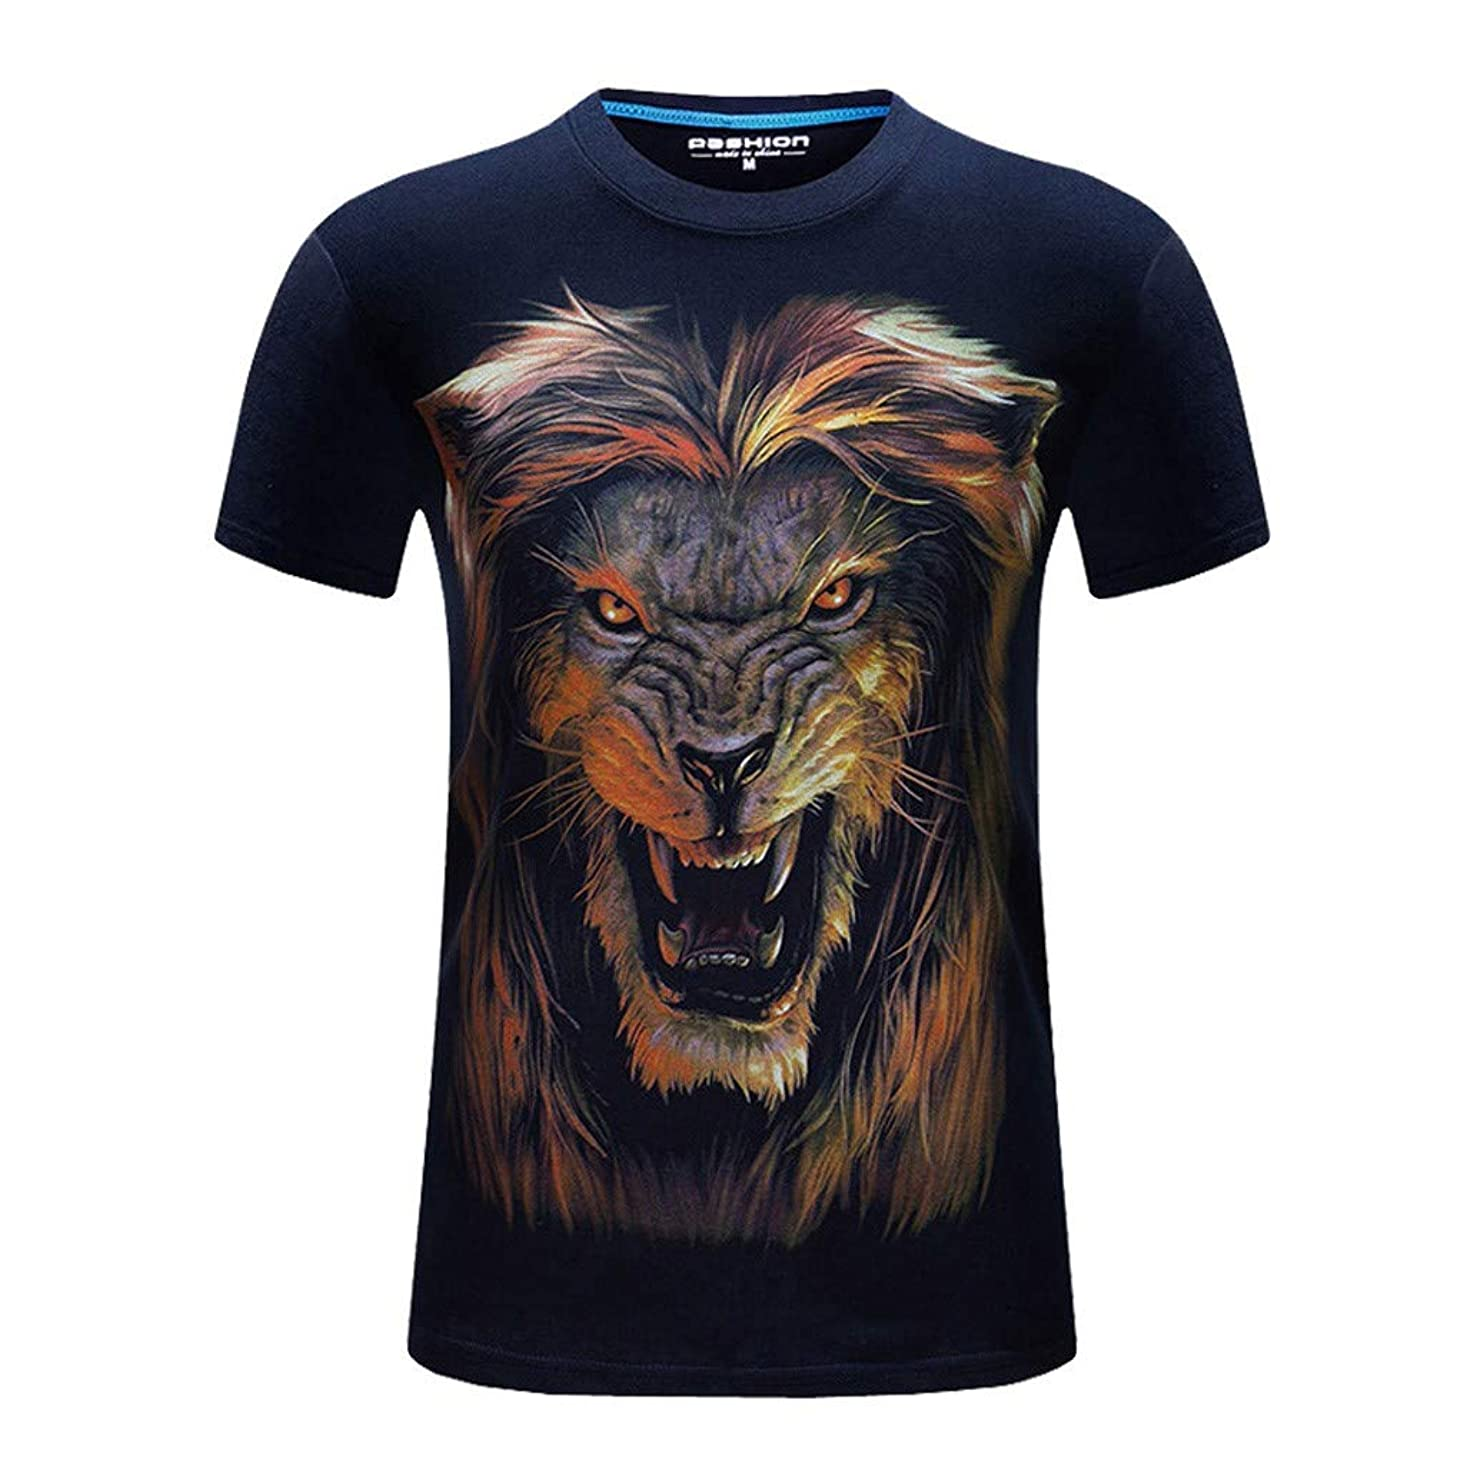 T-Shirts for Men, MmNote Fierce Lion Screaming Print Moisture Wicking Performance Training Athletic Summer Short Sleeve